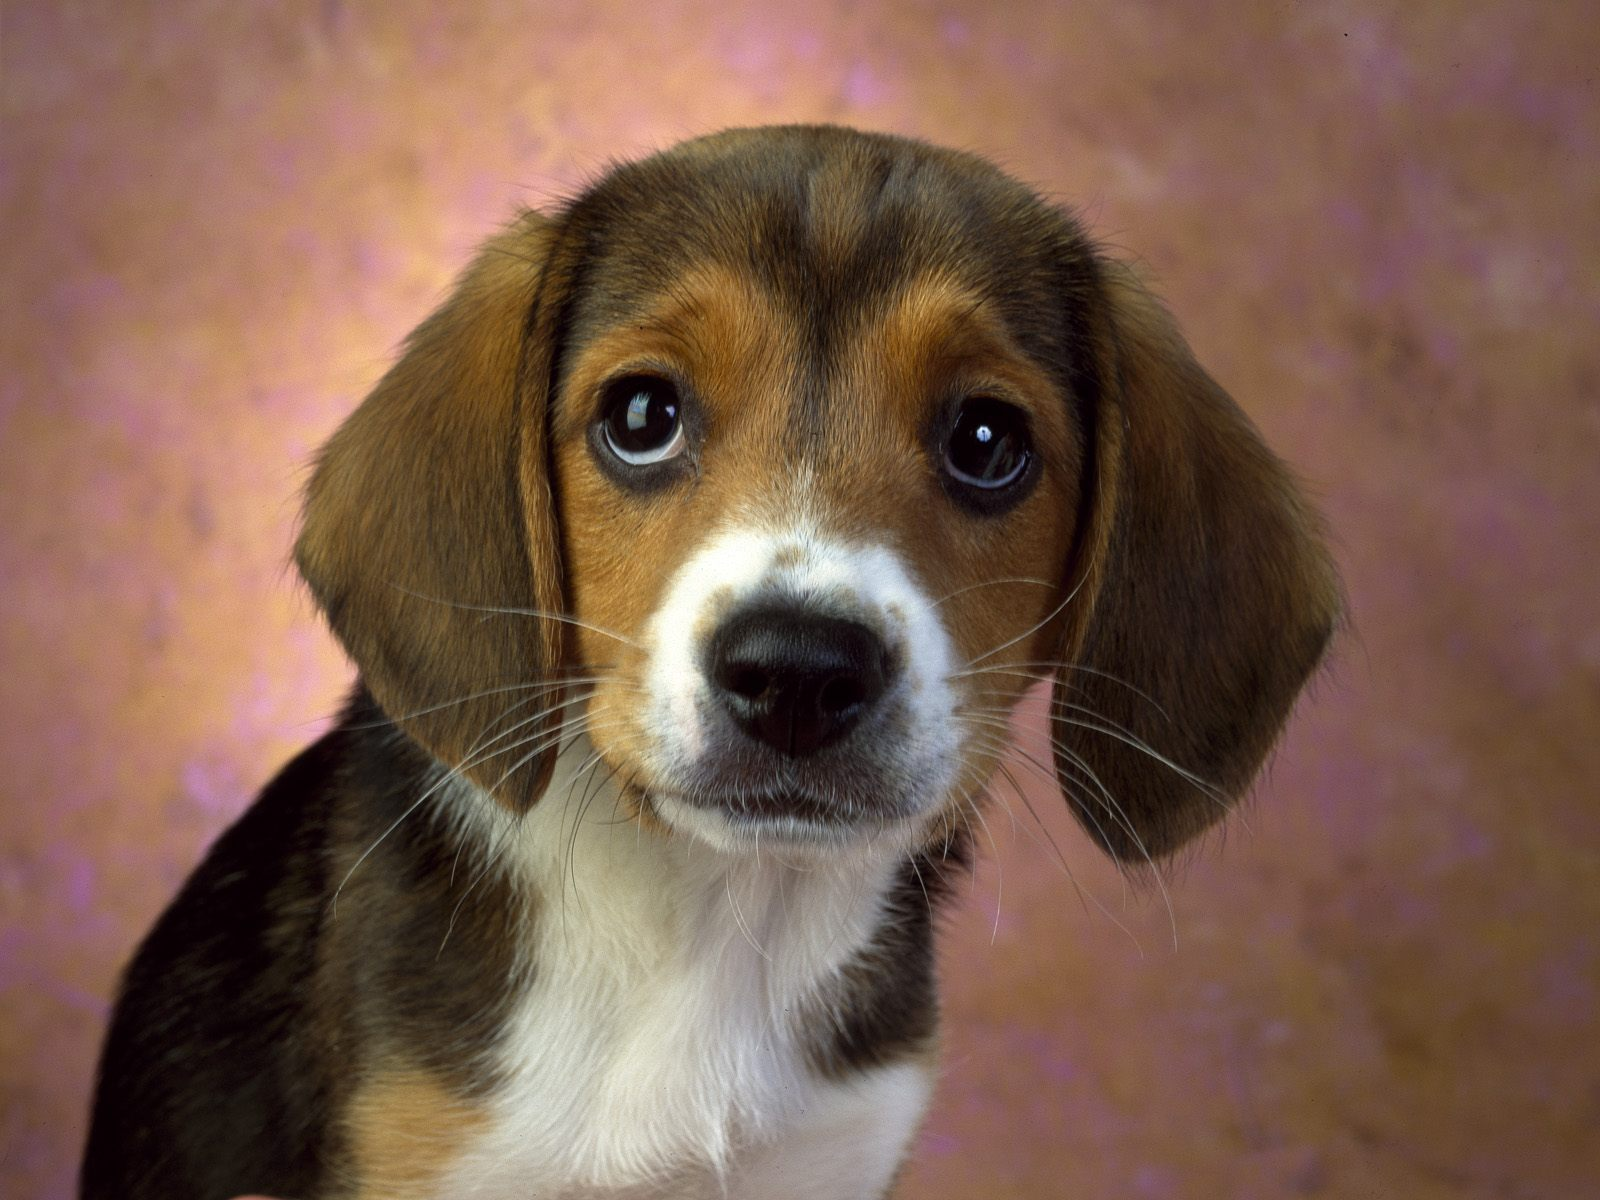 Beagle puppy dog :)